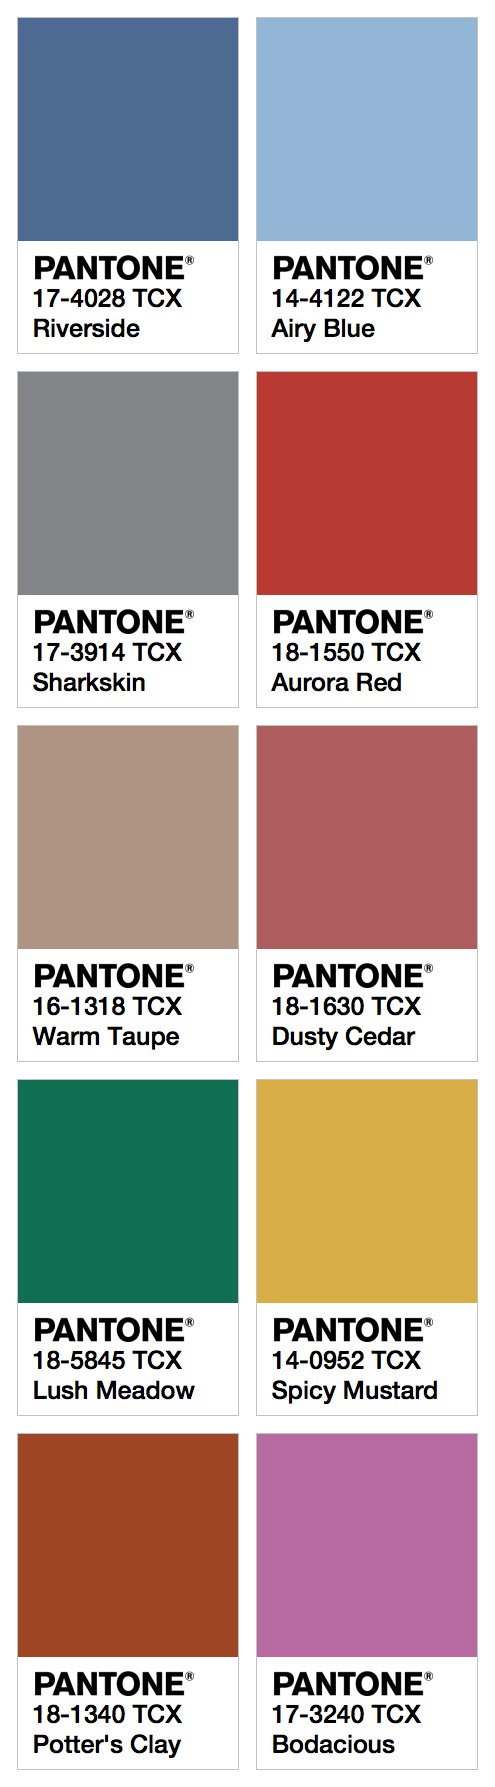 Pantone Fcr Fall 2016 Color Card